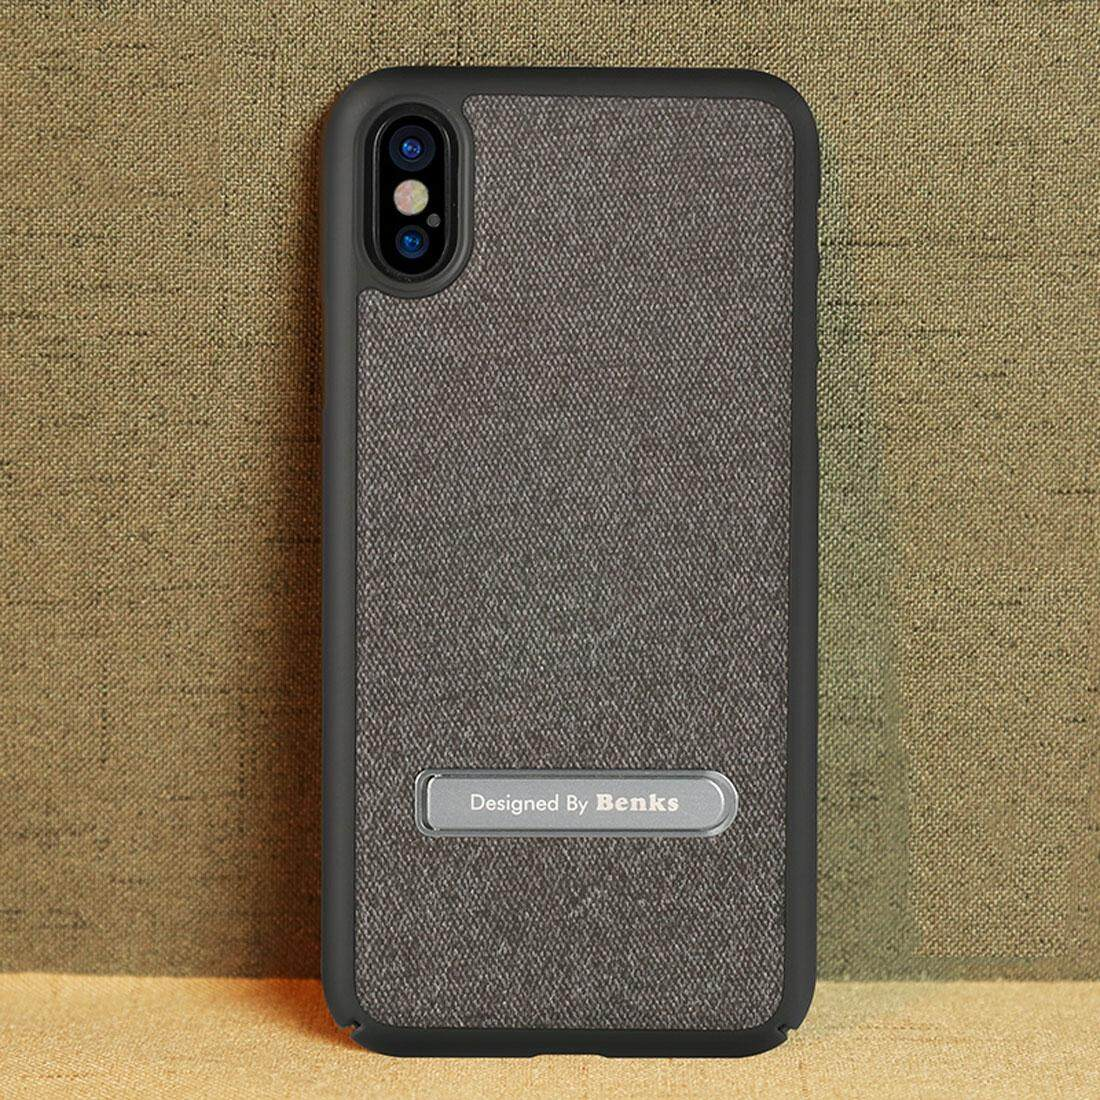 8c1ad0d8f5 Sell benks back cover cheapest best quality   My Store